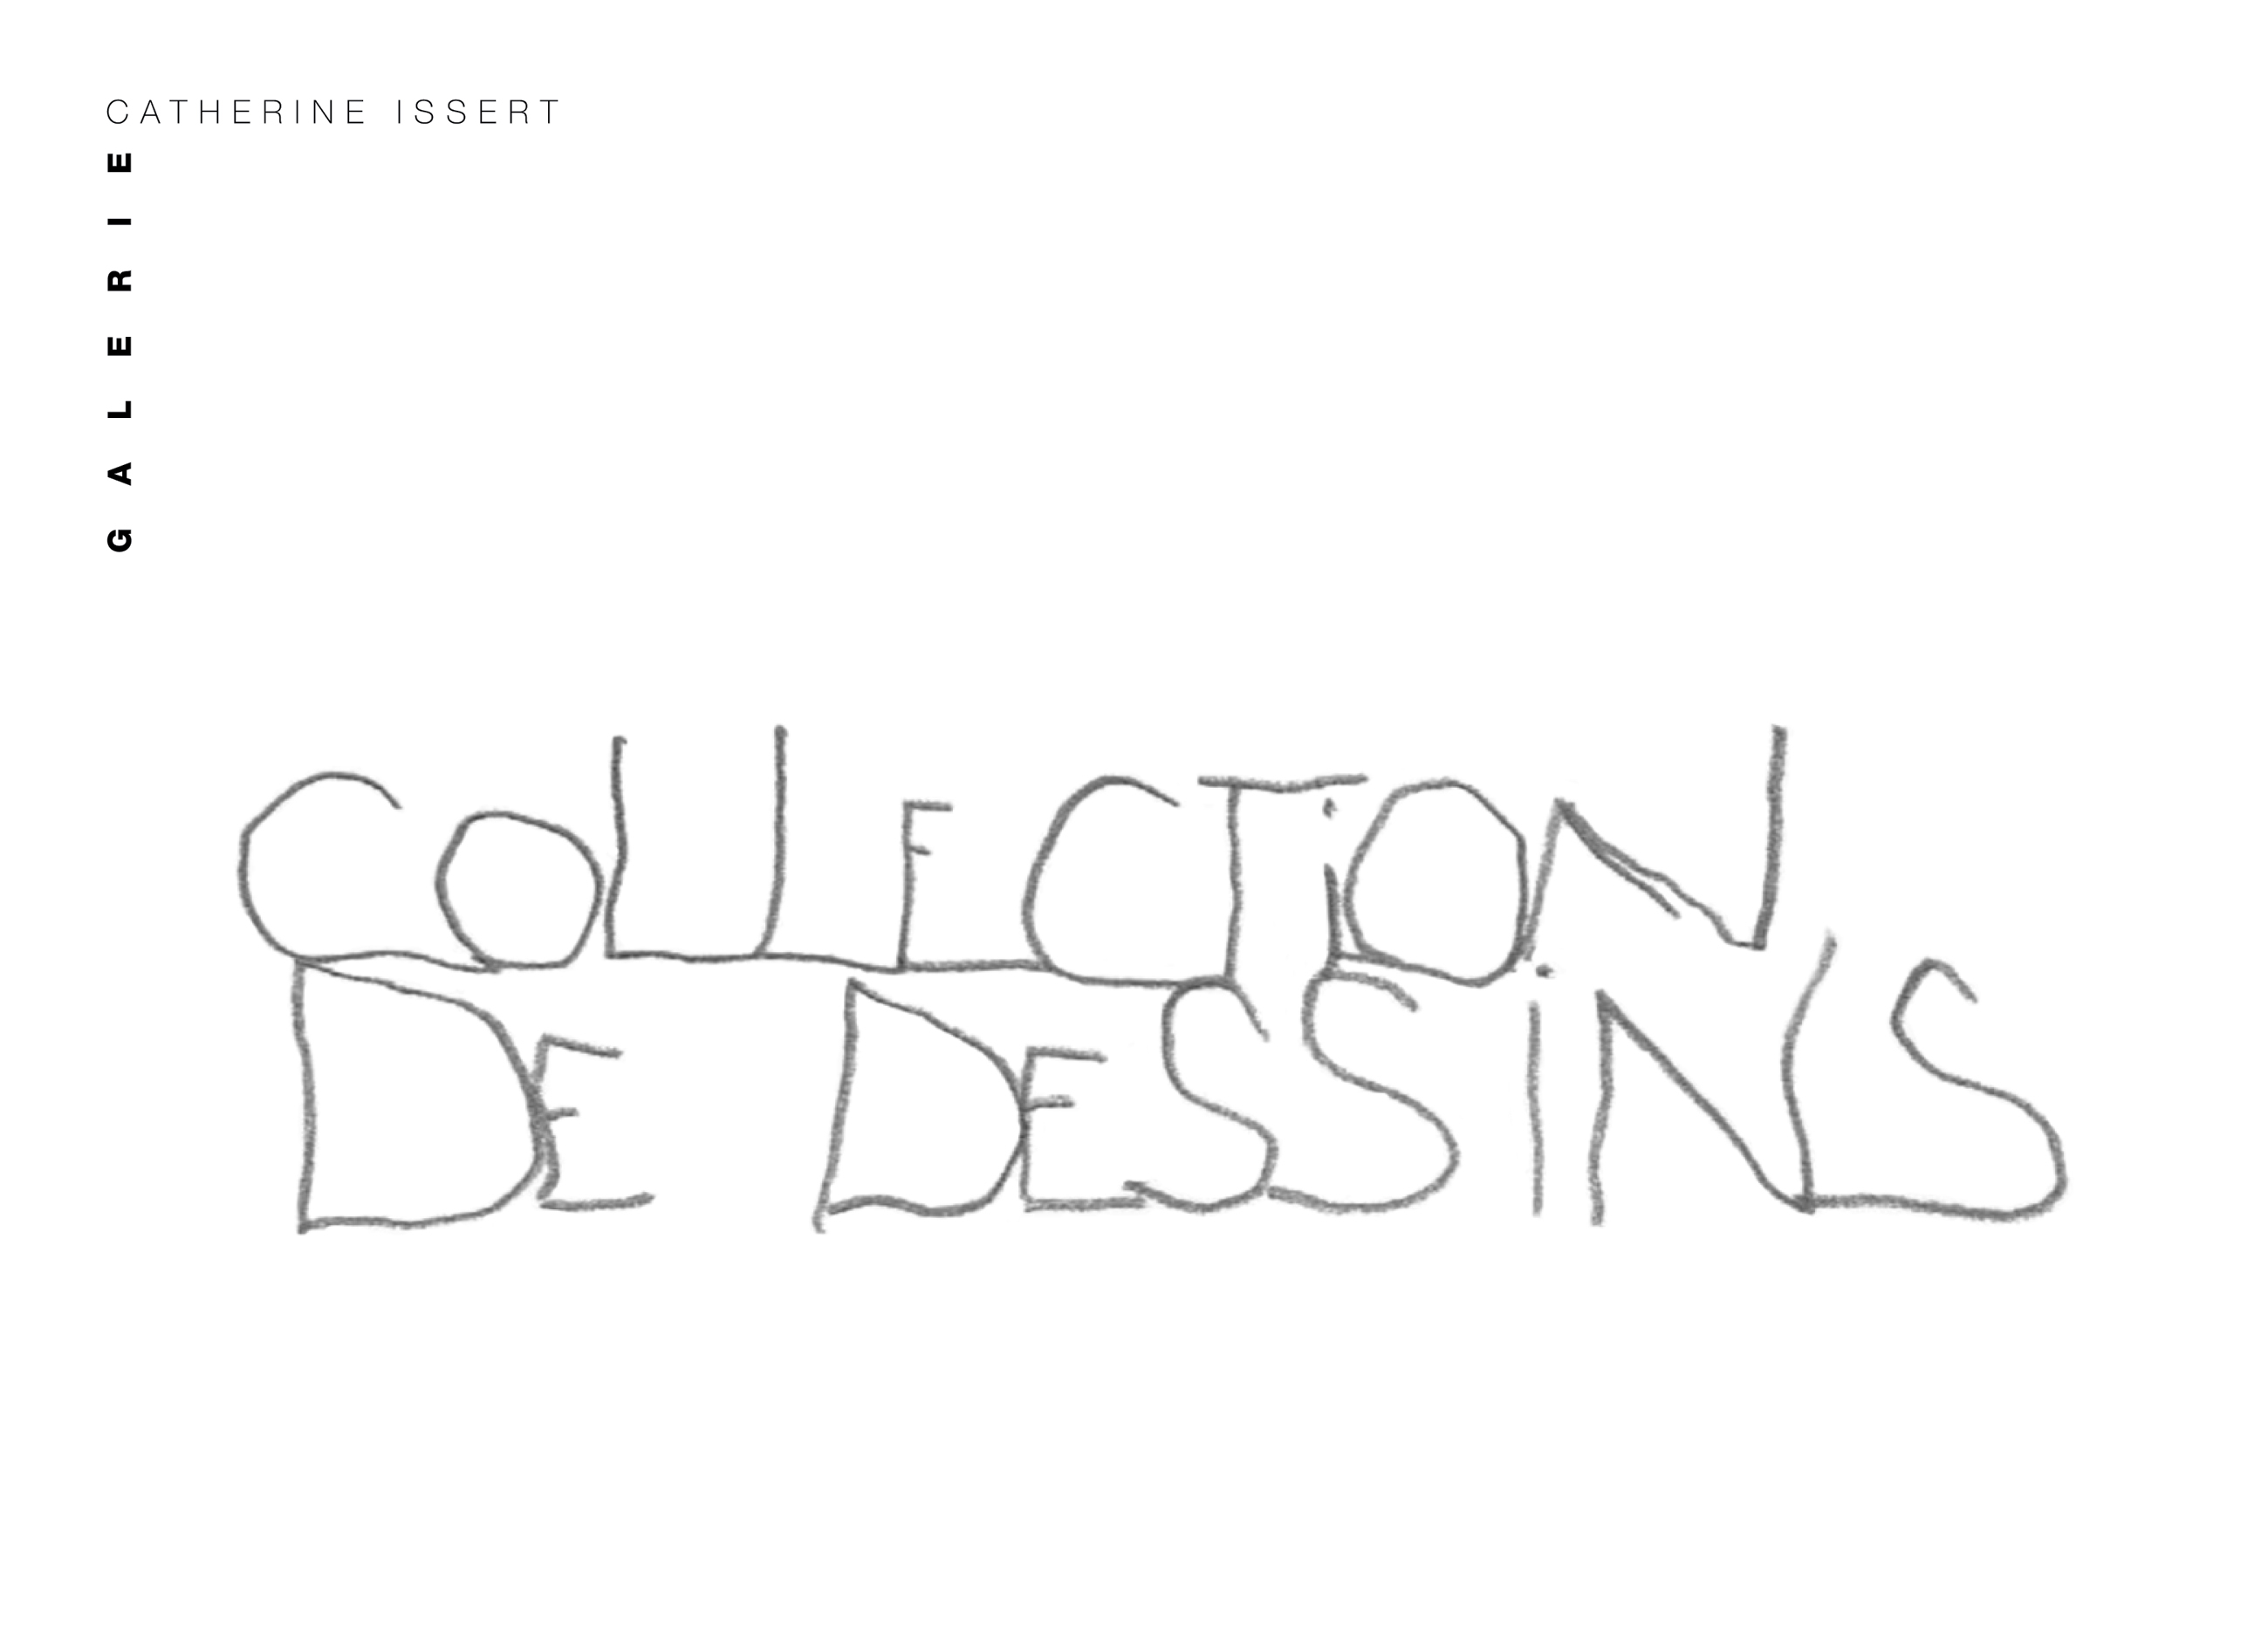 Collection de dessins